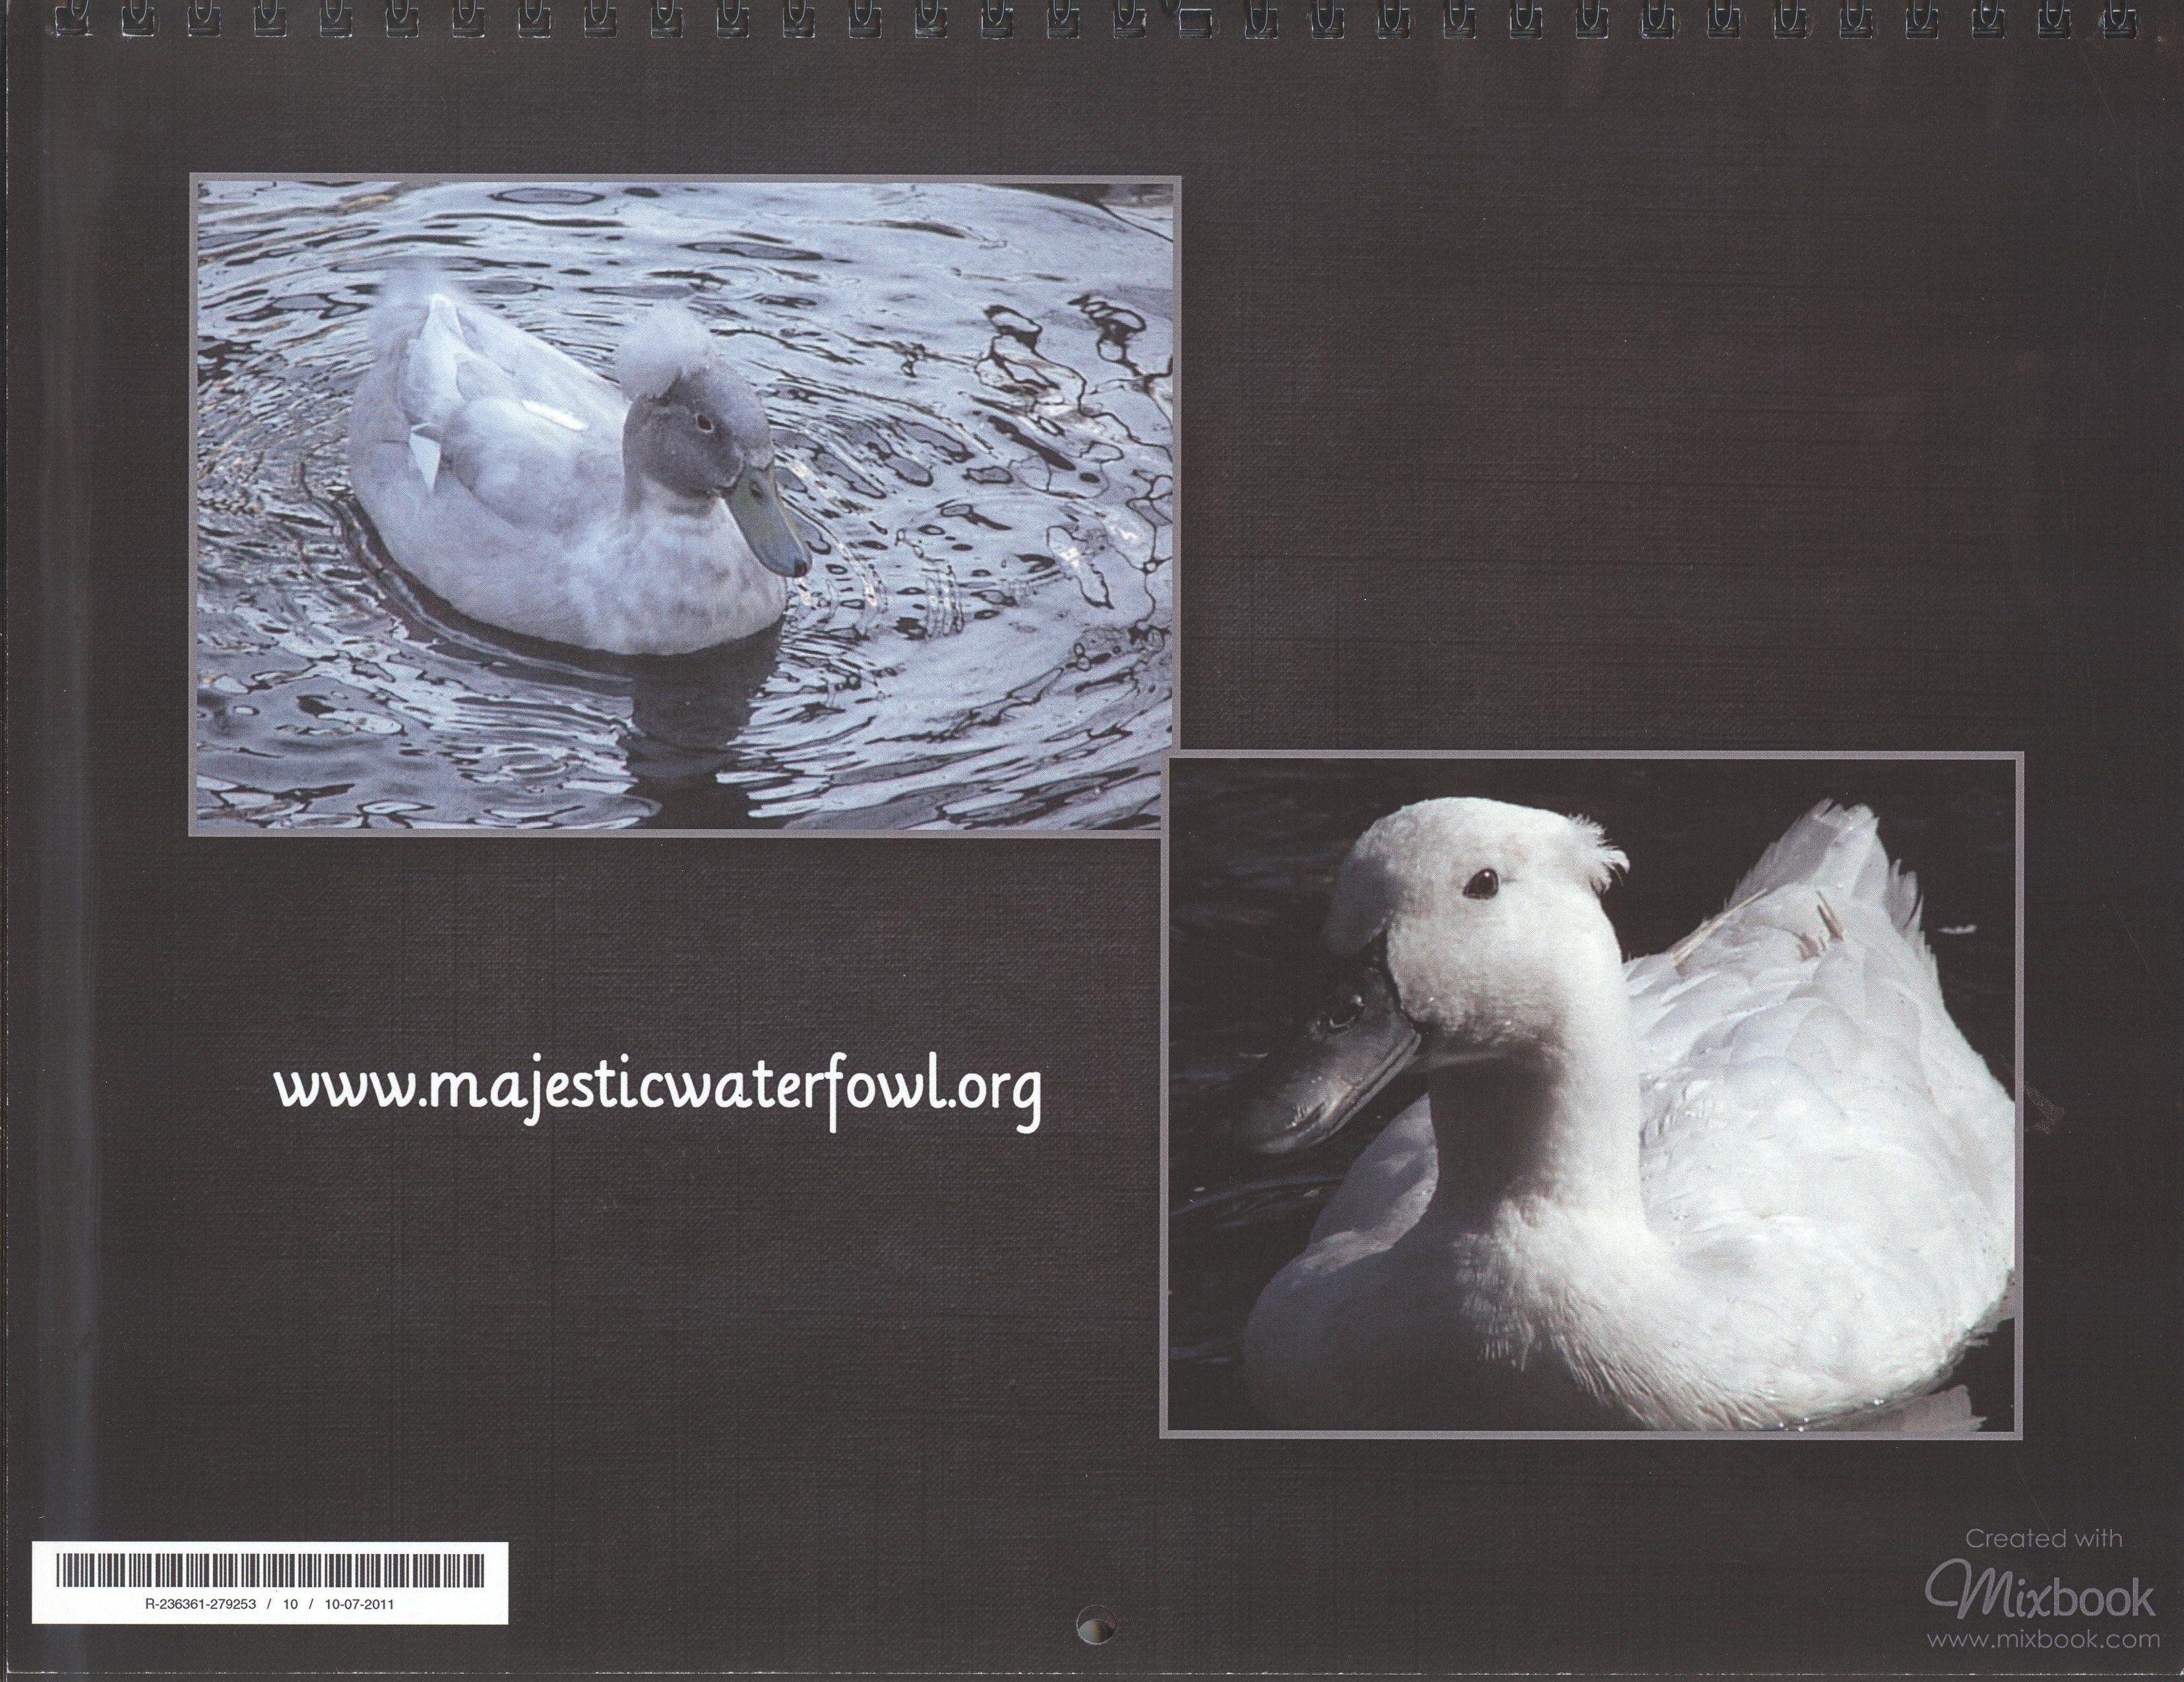 Llc Gross Receipts Tax Word Majestic Waterfowl Sanctuary  Newsletter  The Majestic Monthly  Paypal Send An Invoice with Rental Receipts Template Pdf Click On Images For Larger Views Toys R Us Returns Without Receipt Pdf